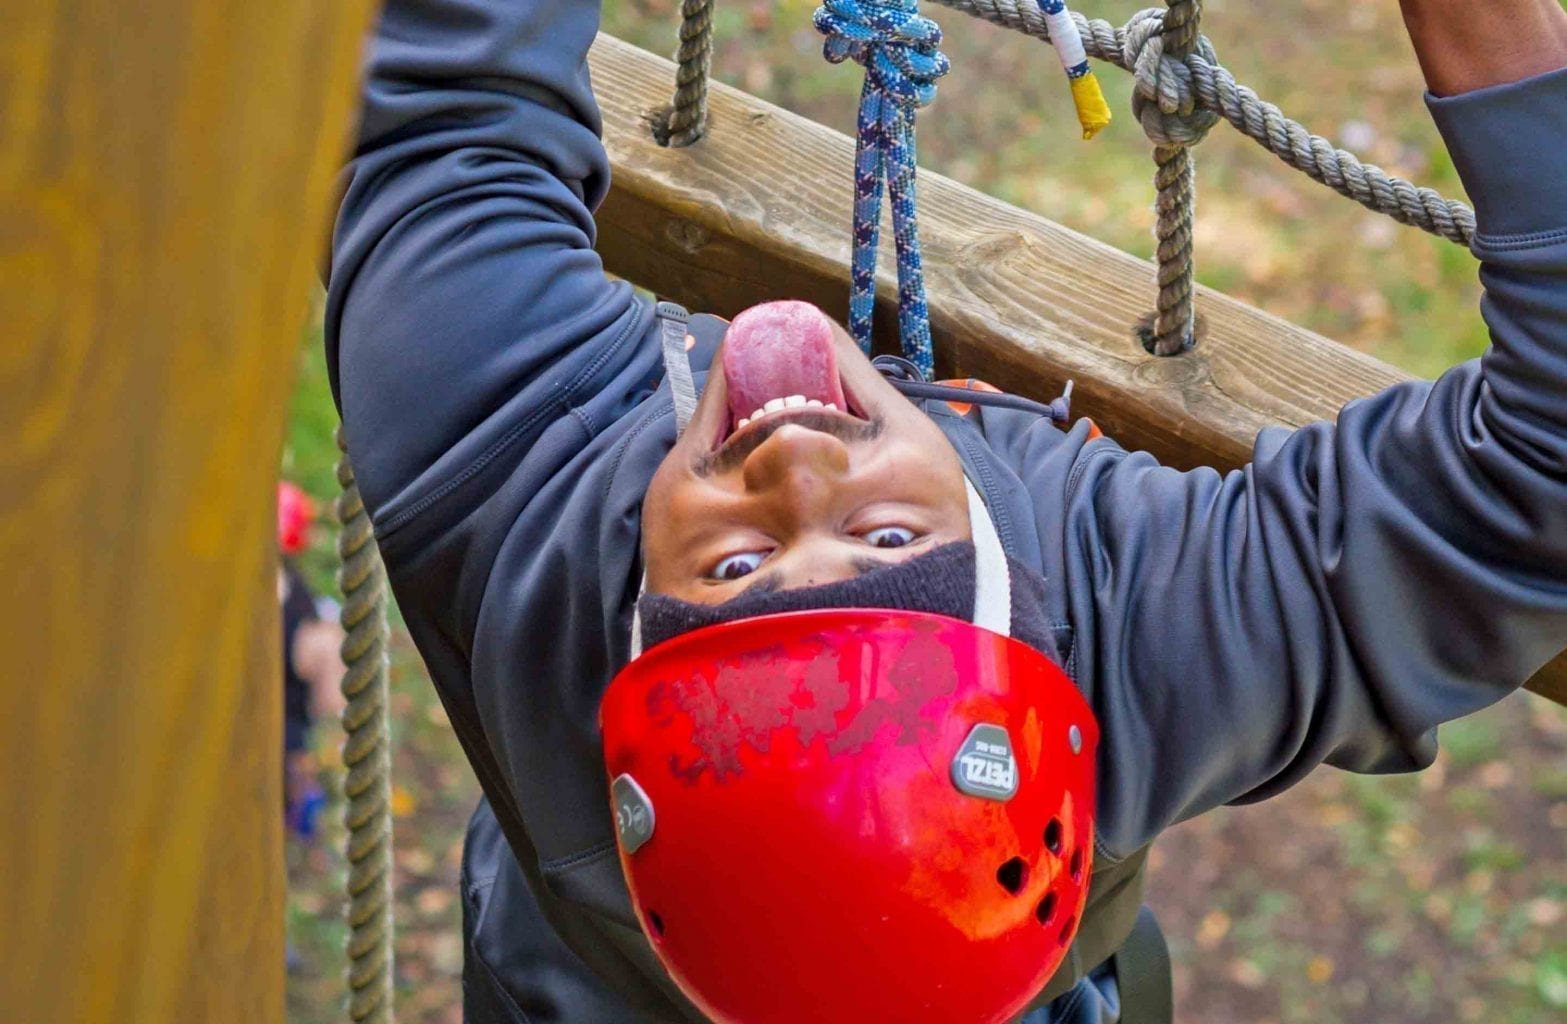 A student looks up at the camera while hanging from the rope ladder on the Team Challenge Course at ACE Adventure Resort